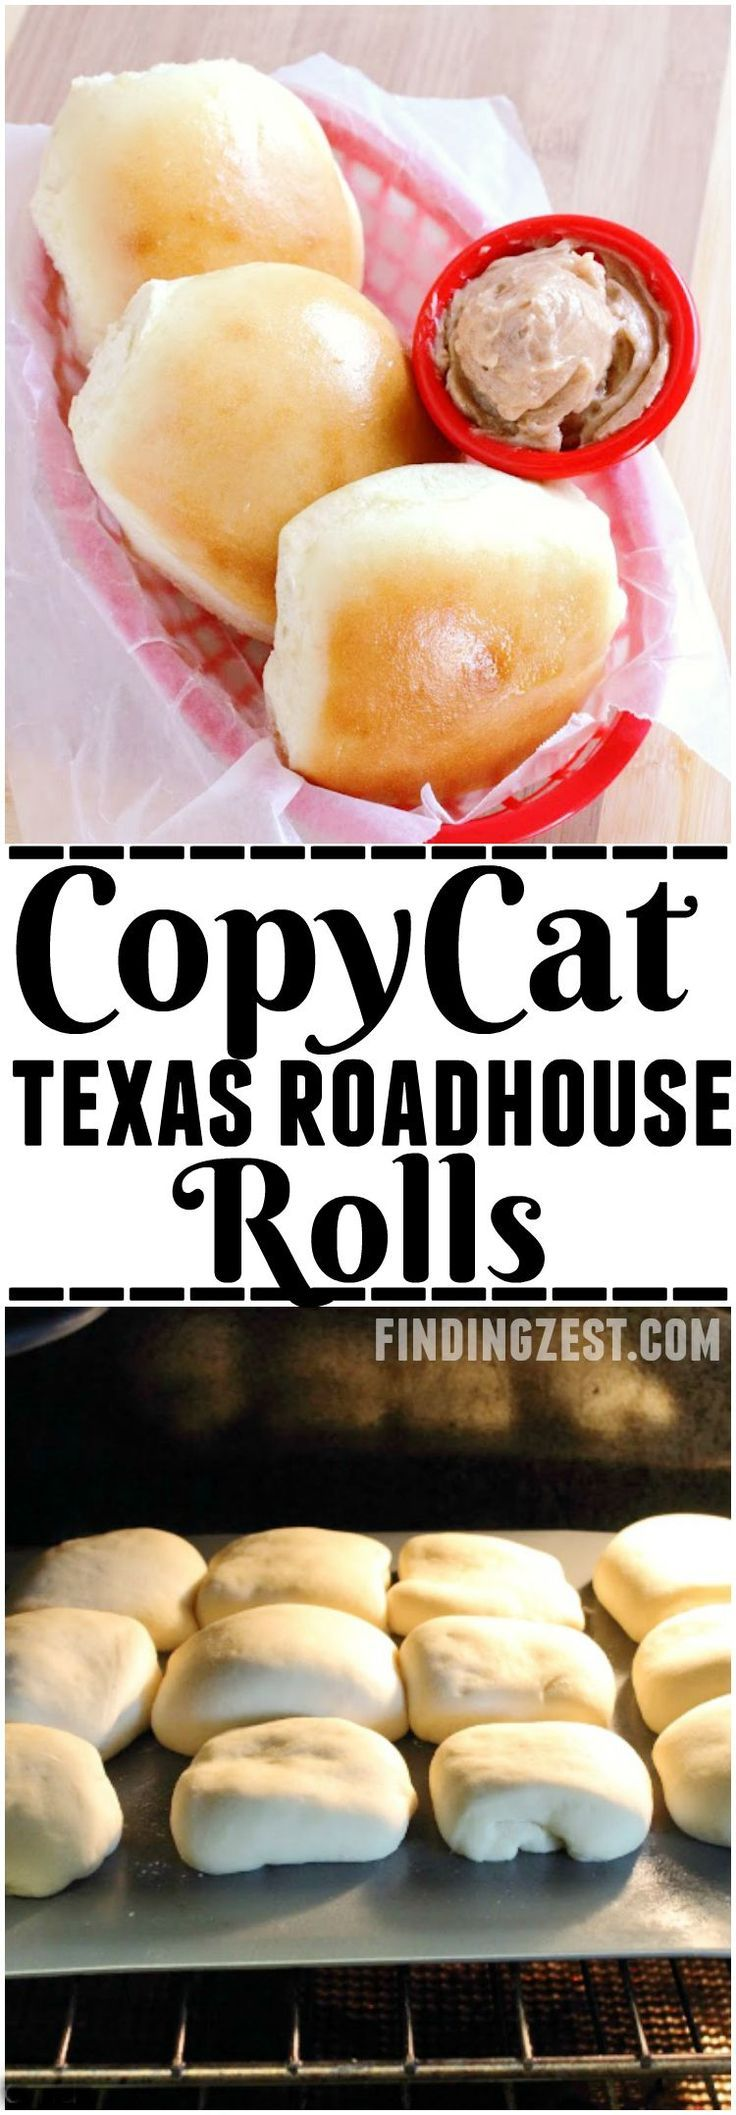 Copycat Texas Roadhouse Rolls with Cinnamon Butter Slow Cooker Pumpkin White Hot... - event-planing -